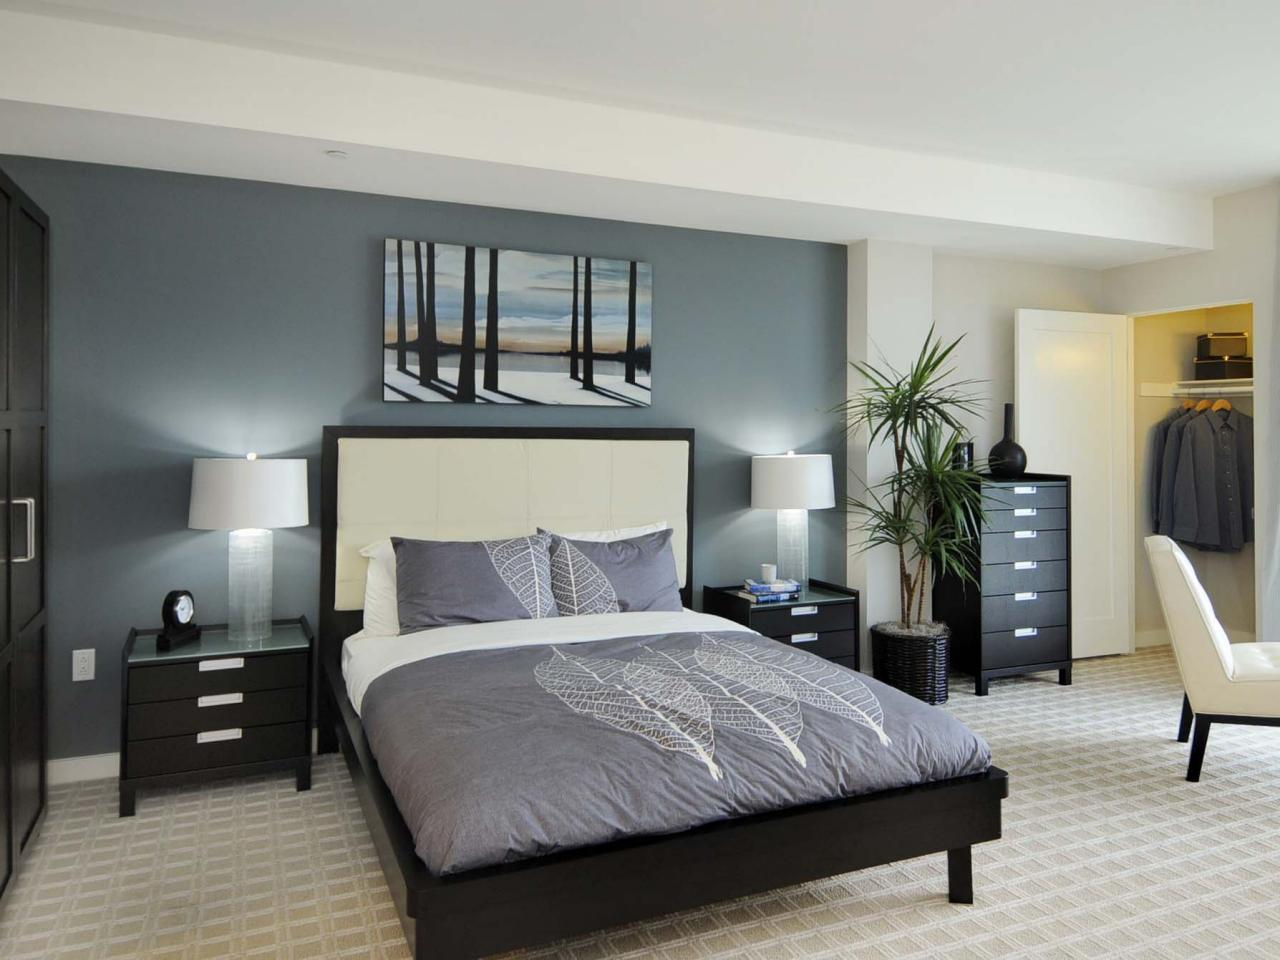 Bedroom Colors Grey Blue gray master bedrooms ideas | hgtv